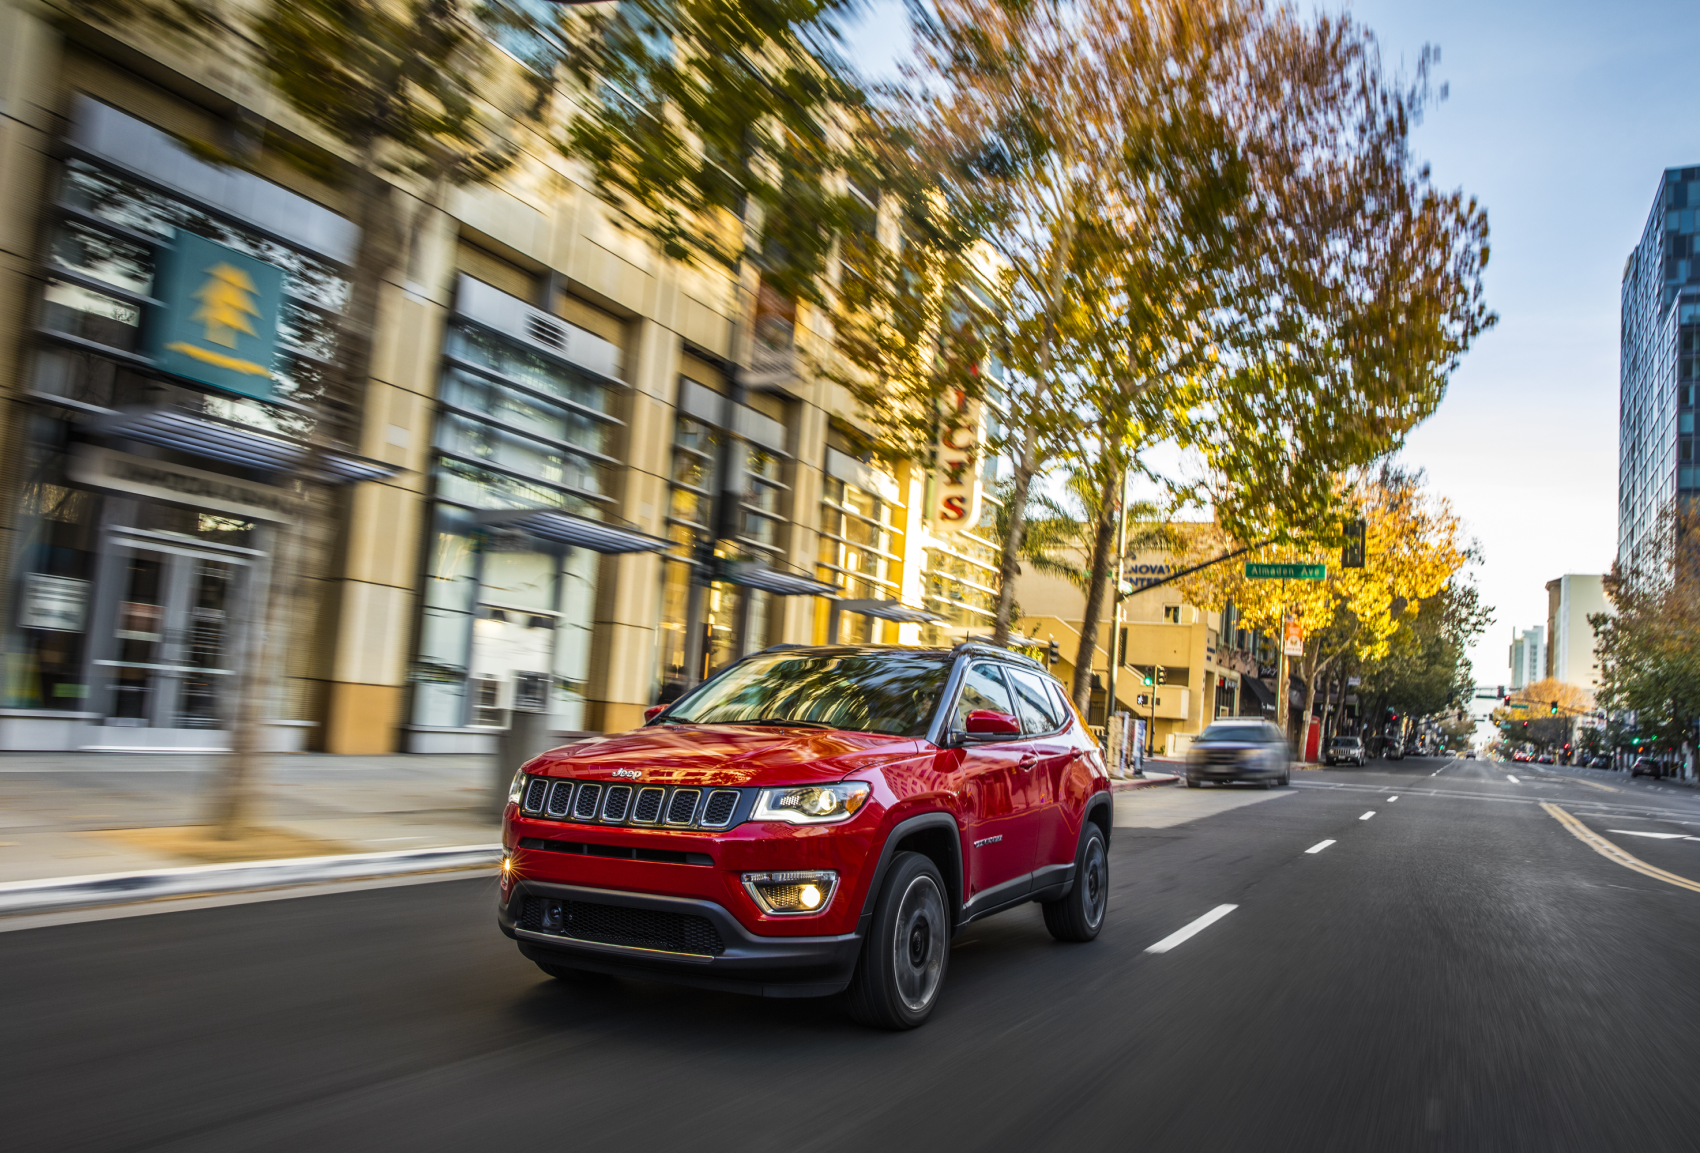 2021 Jeep Compass Red City